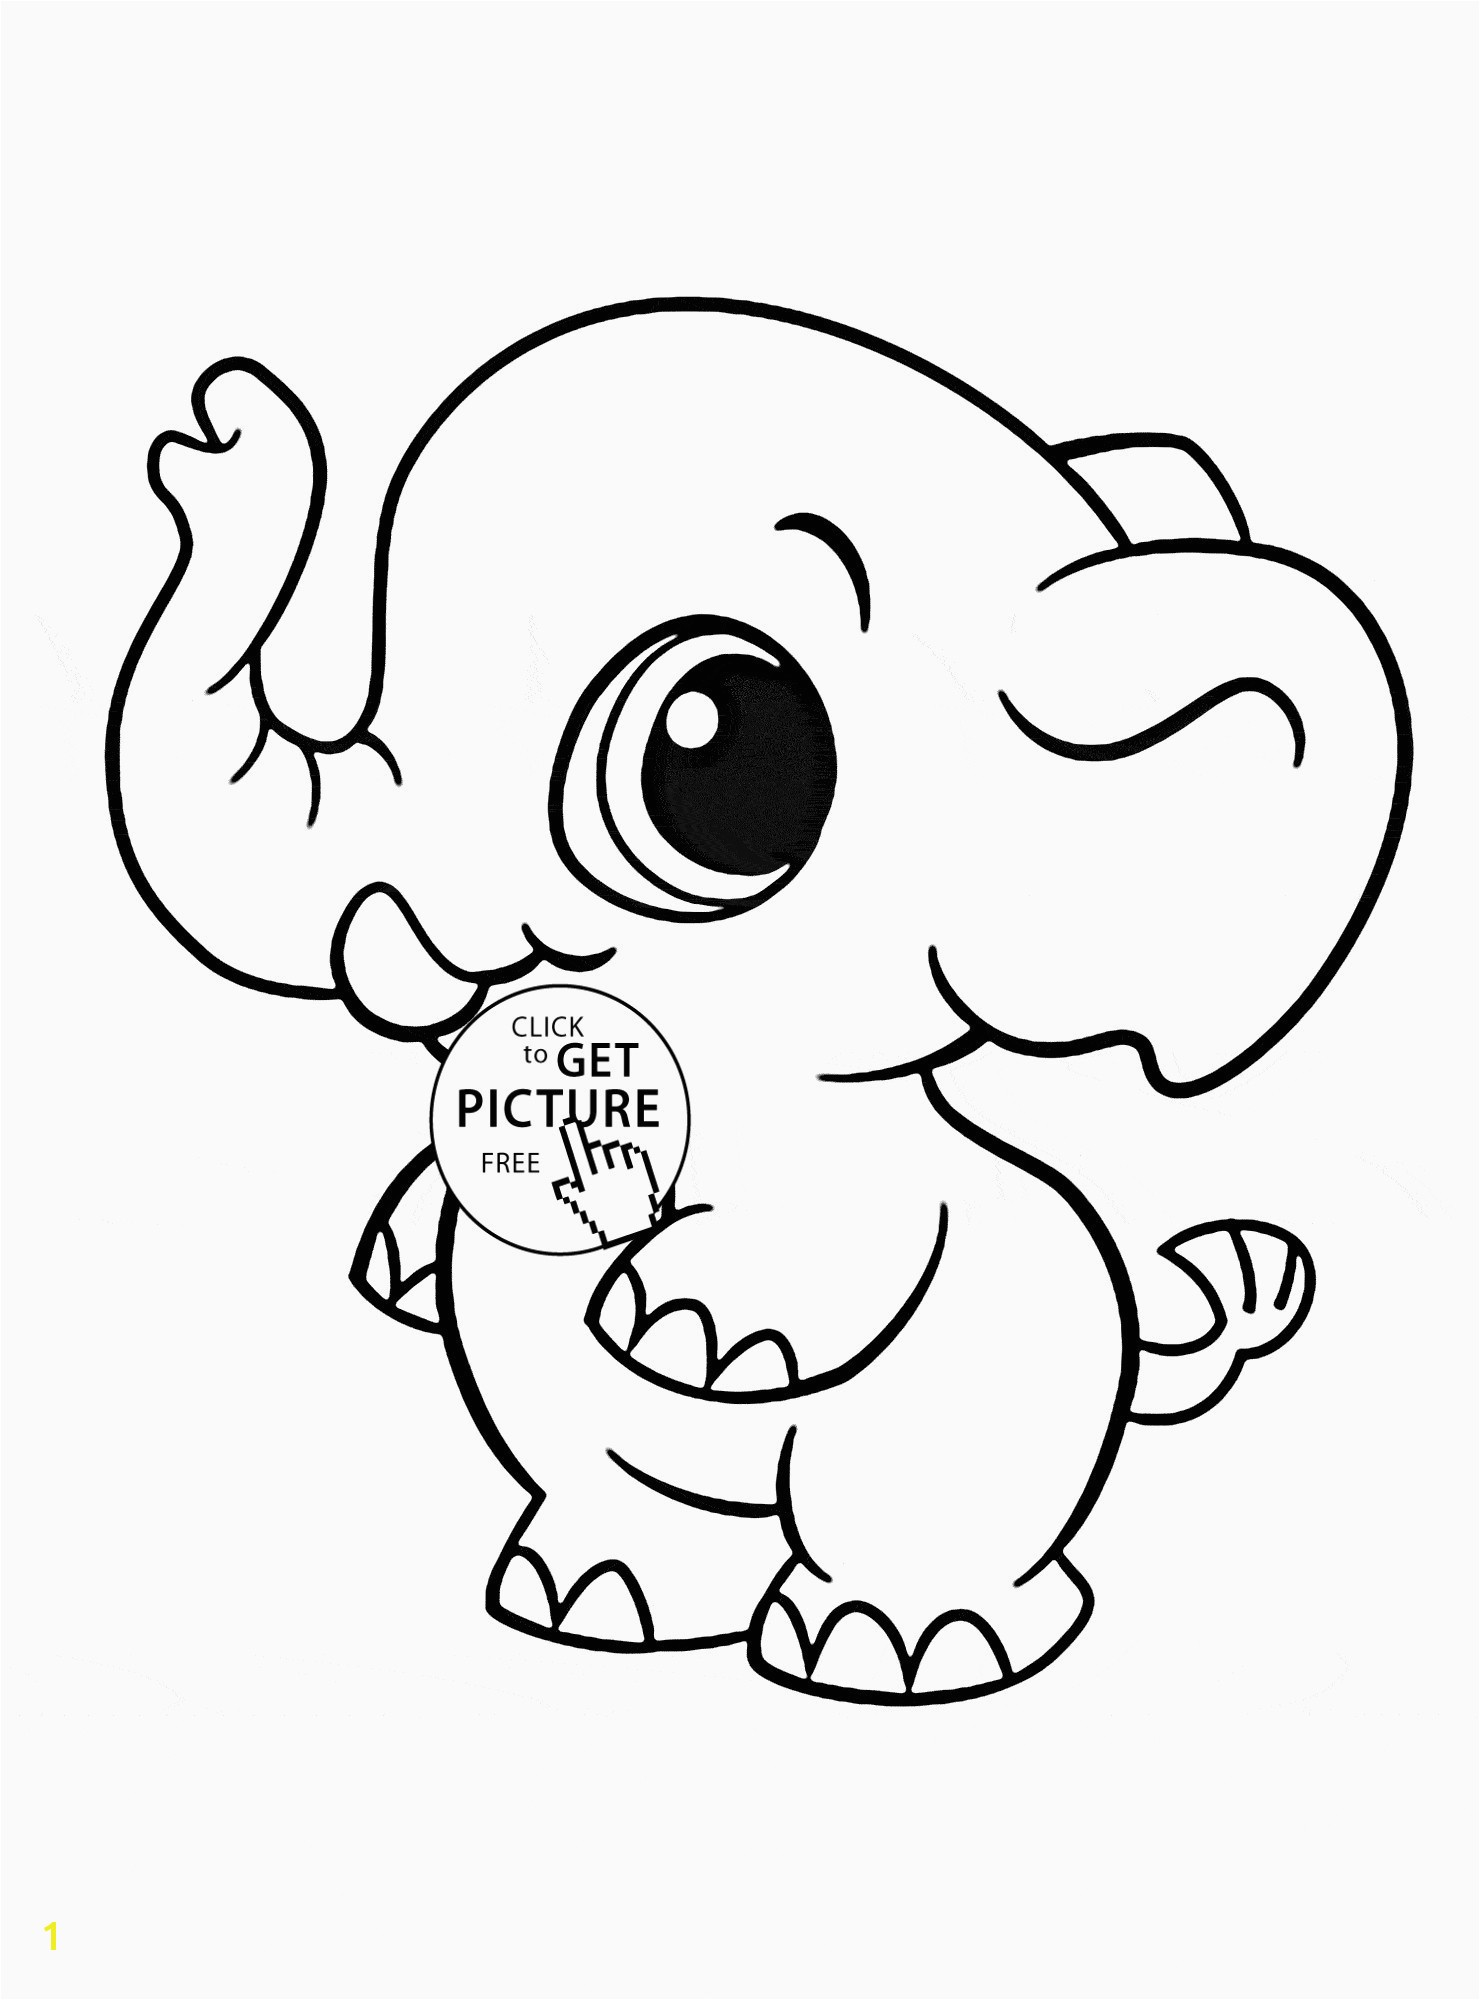 14 New Winnie the Pooh Characters Coloring Pages Image